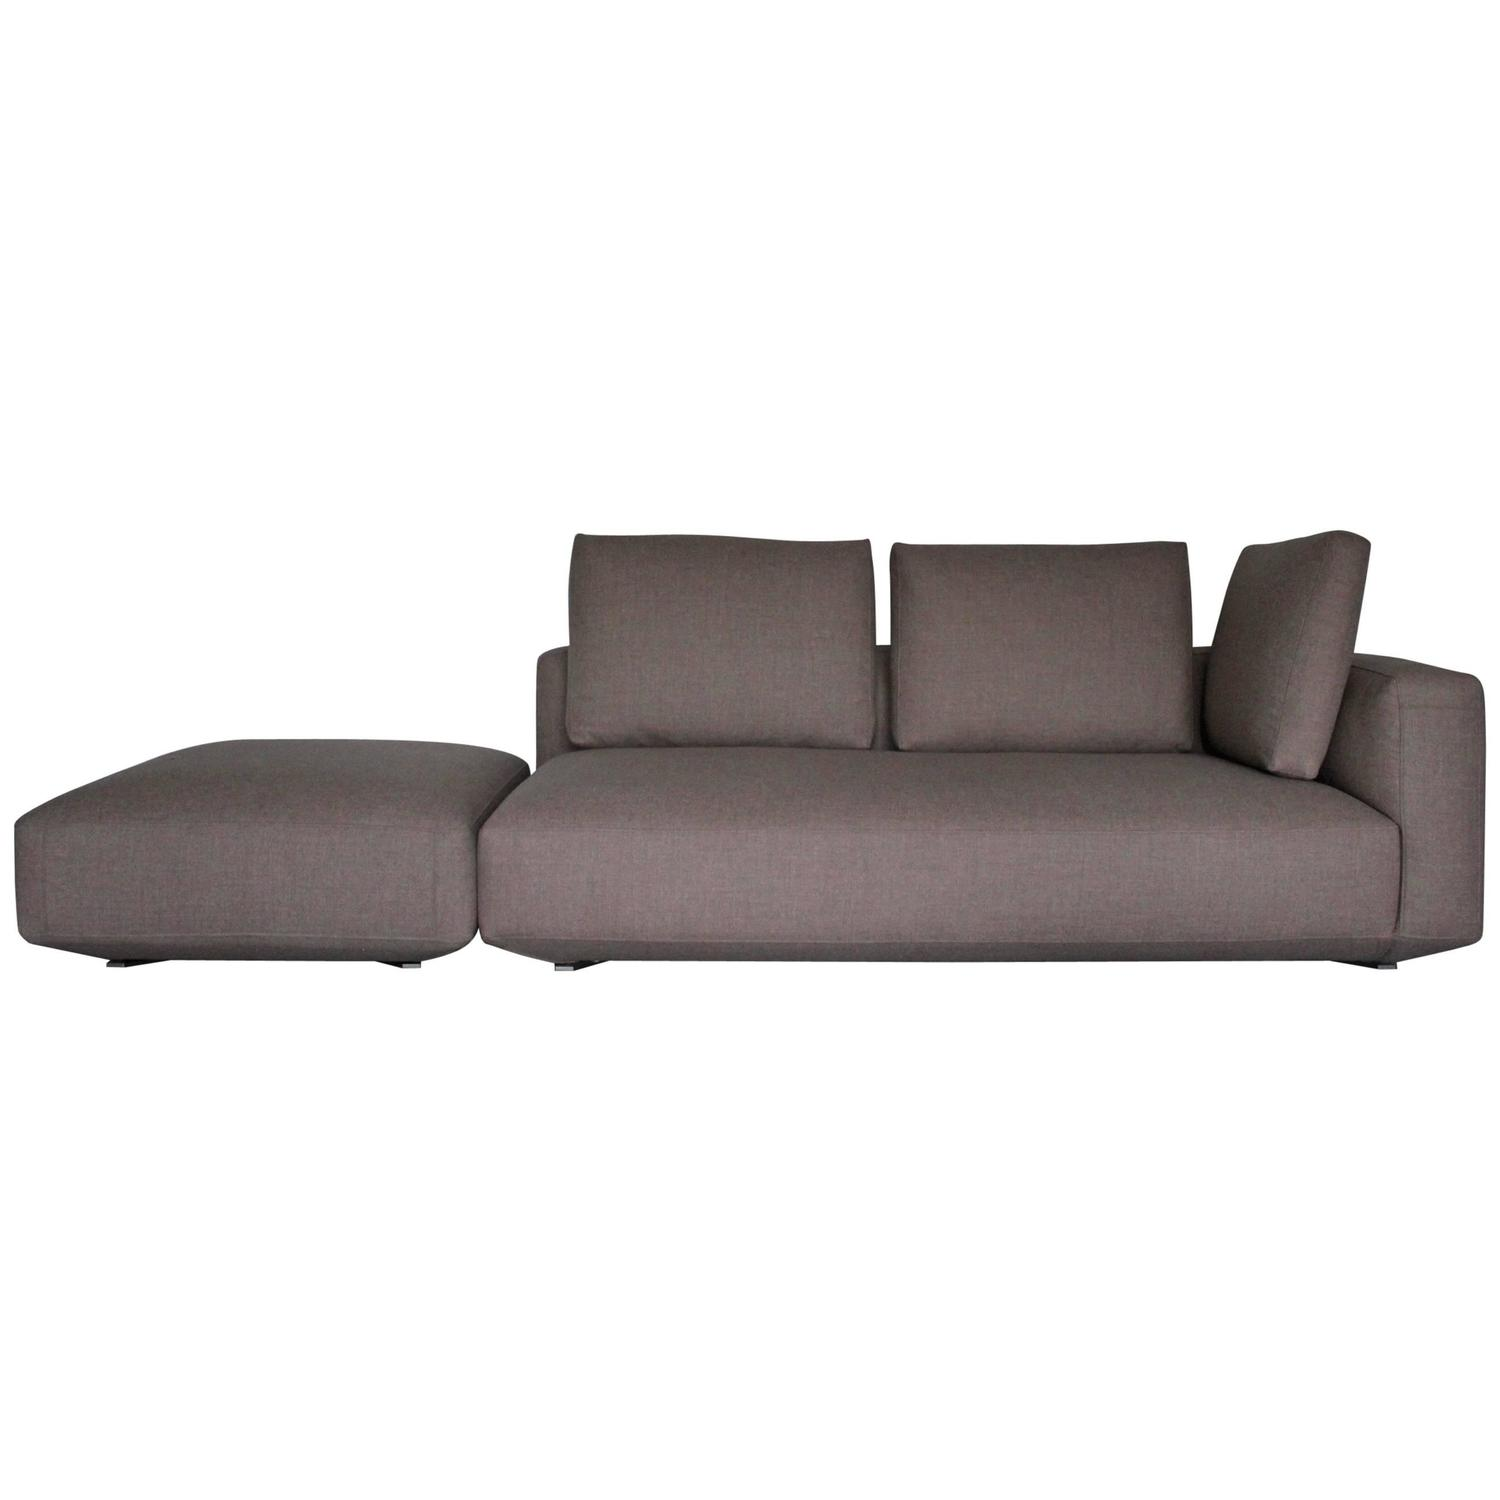 zanotta sofa 1242 kilt zanotta sofa milia thesofa. Black Bedroom Furniture Sets. Home Design Ideas